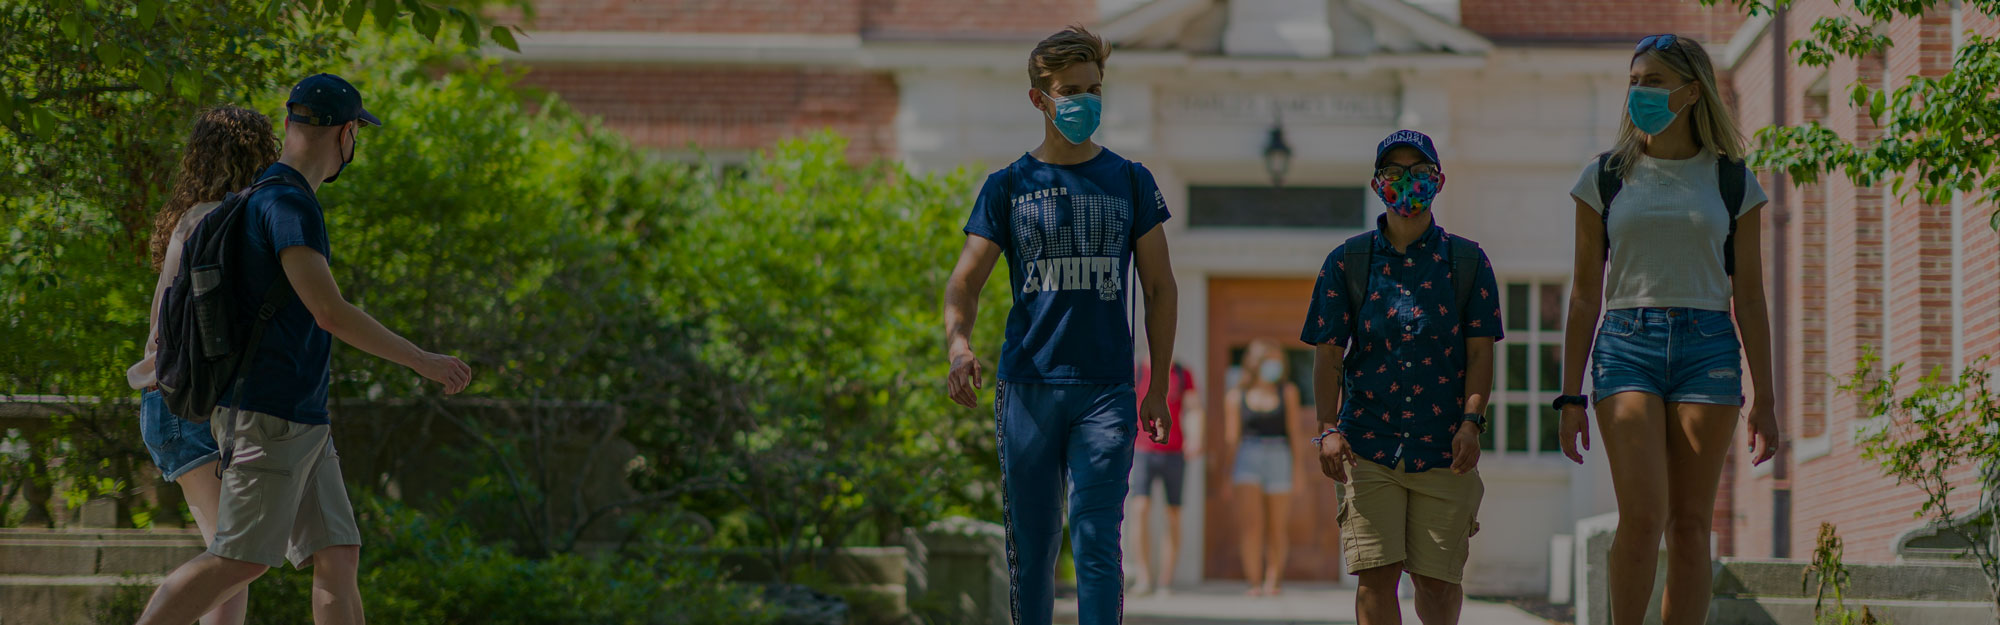 unh students wearing masks